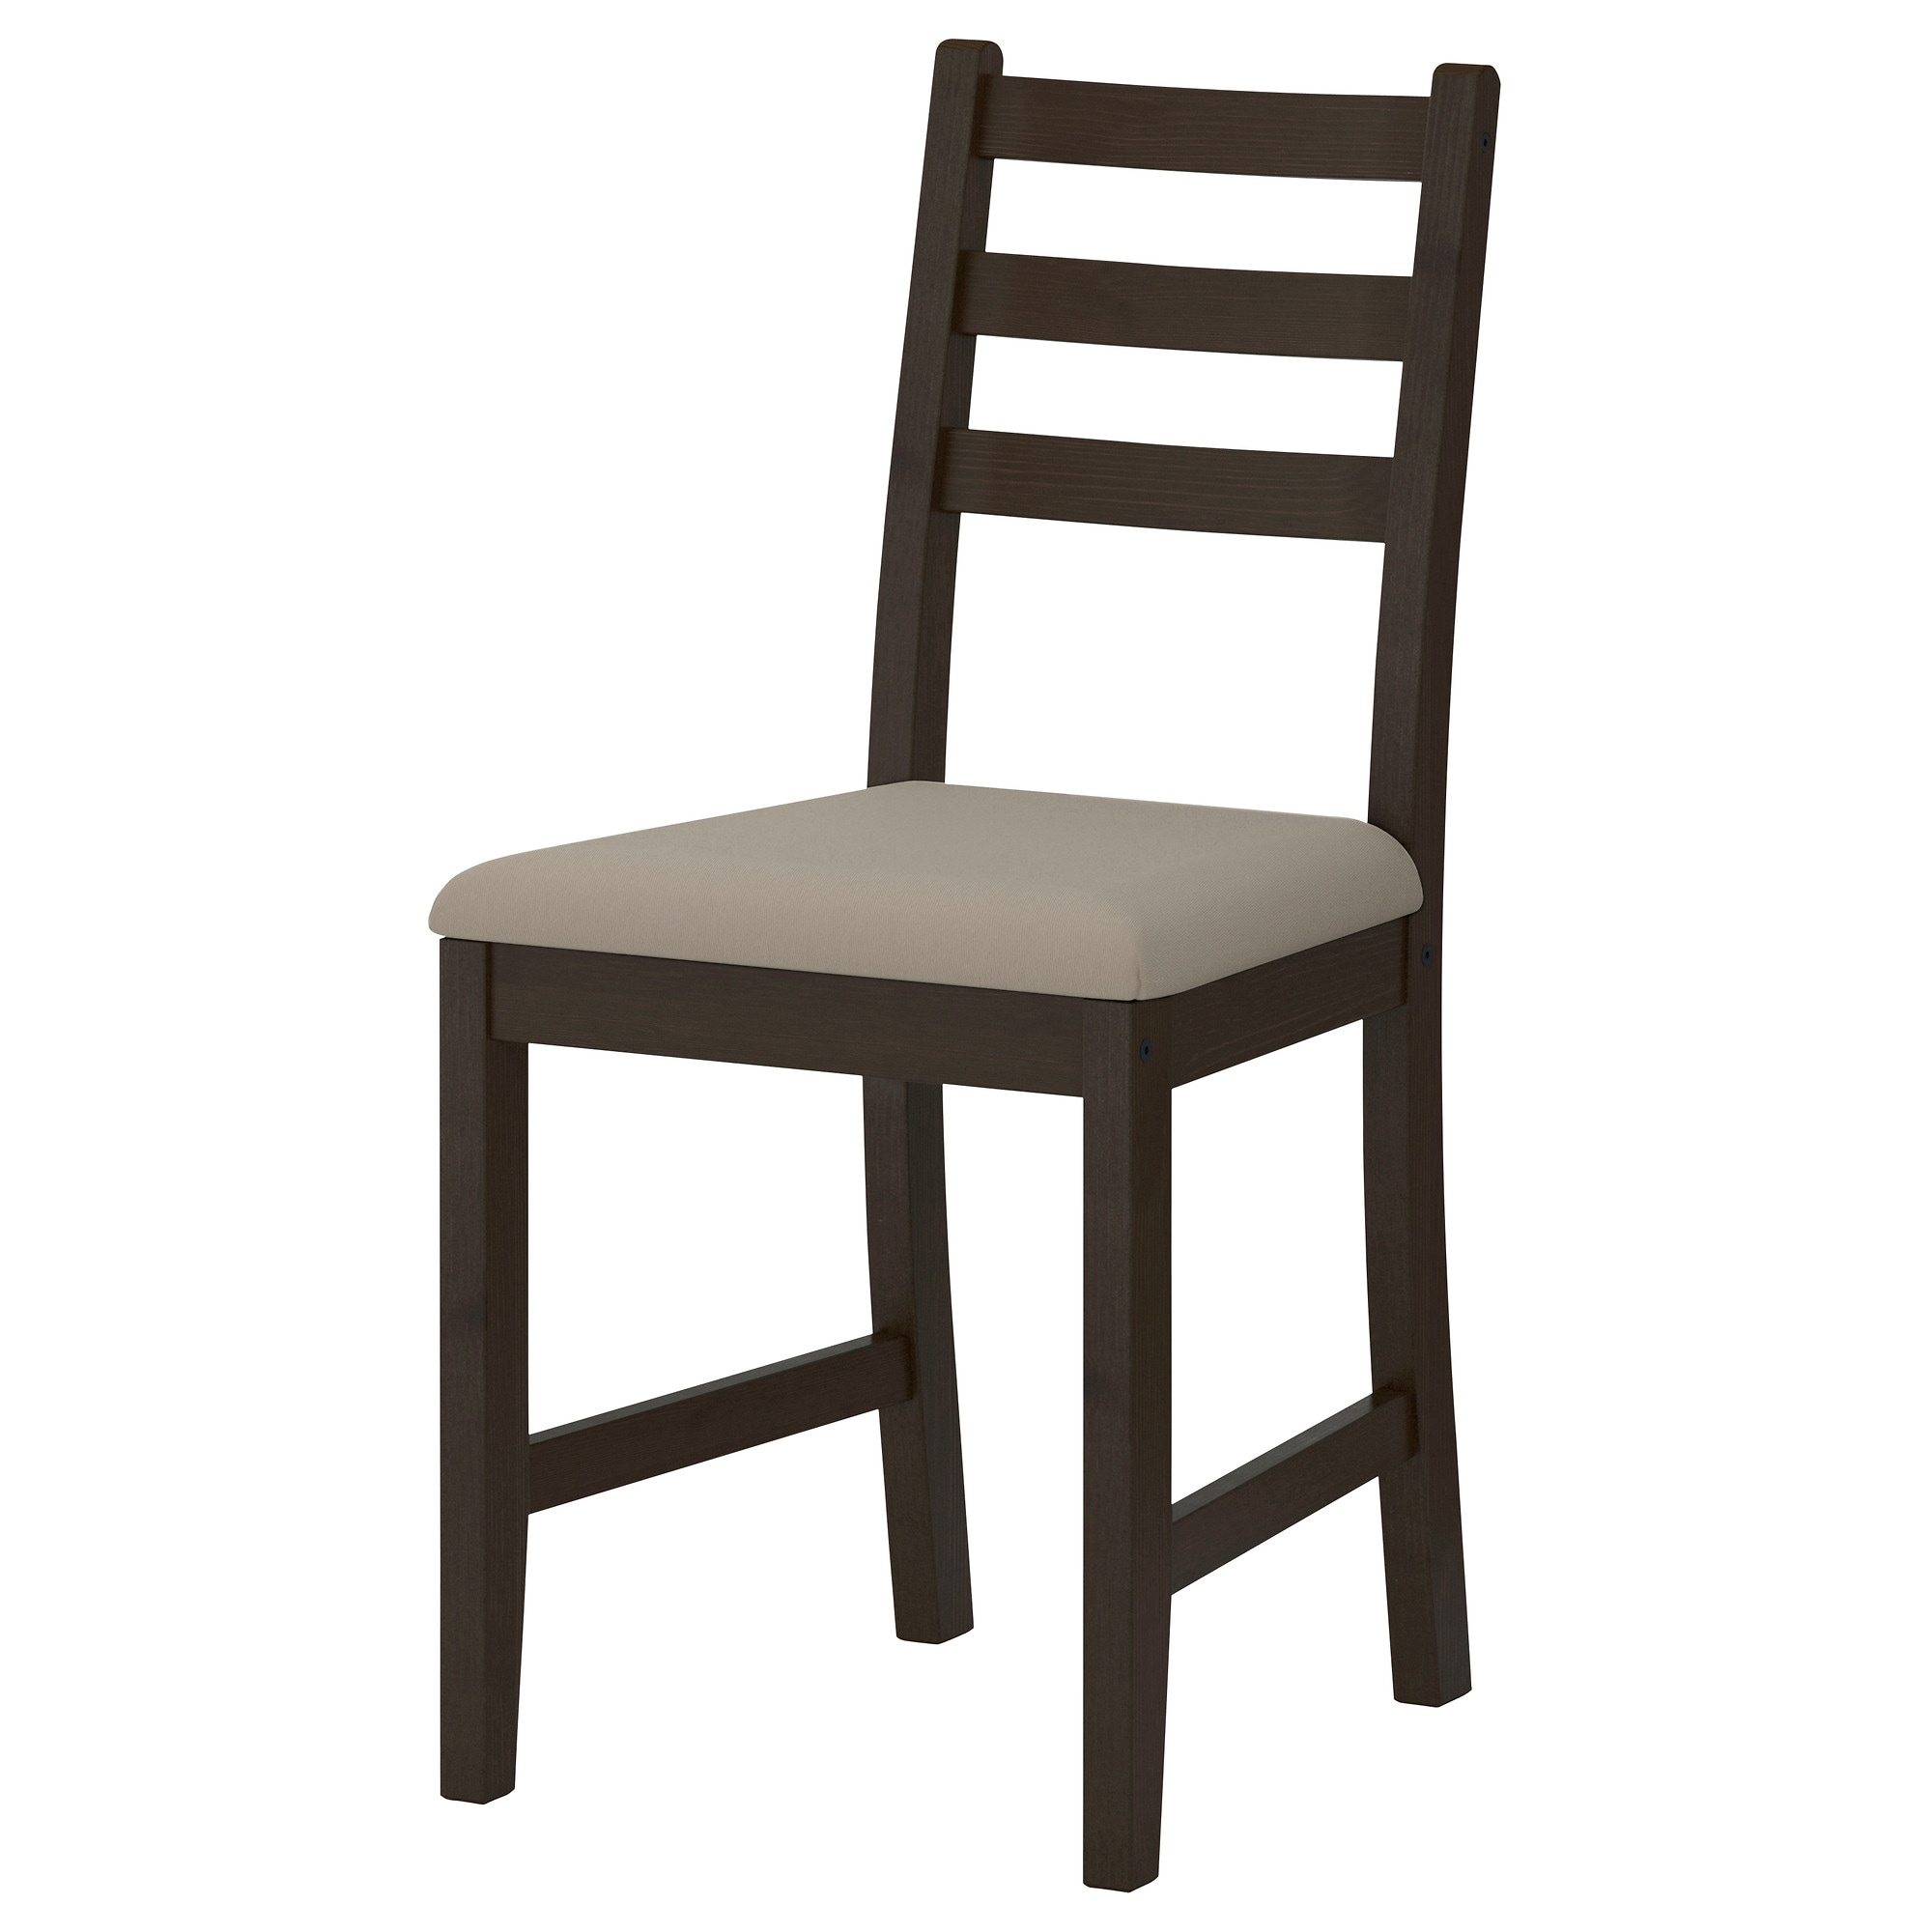 Dining chairs Dining chairs Upholstered chairs IKEA